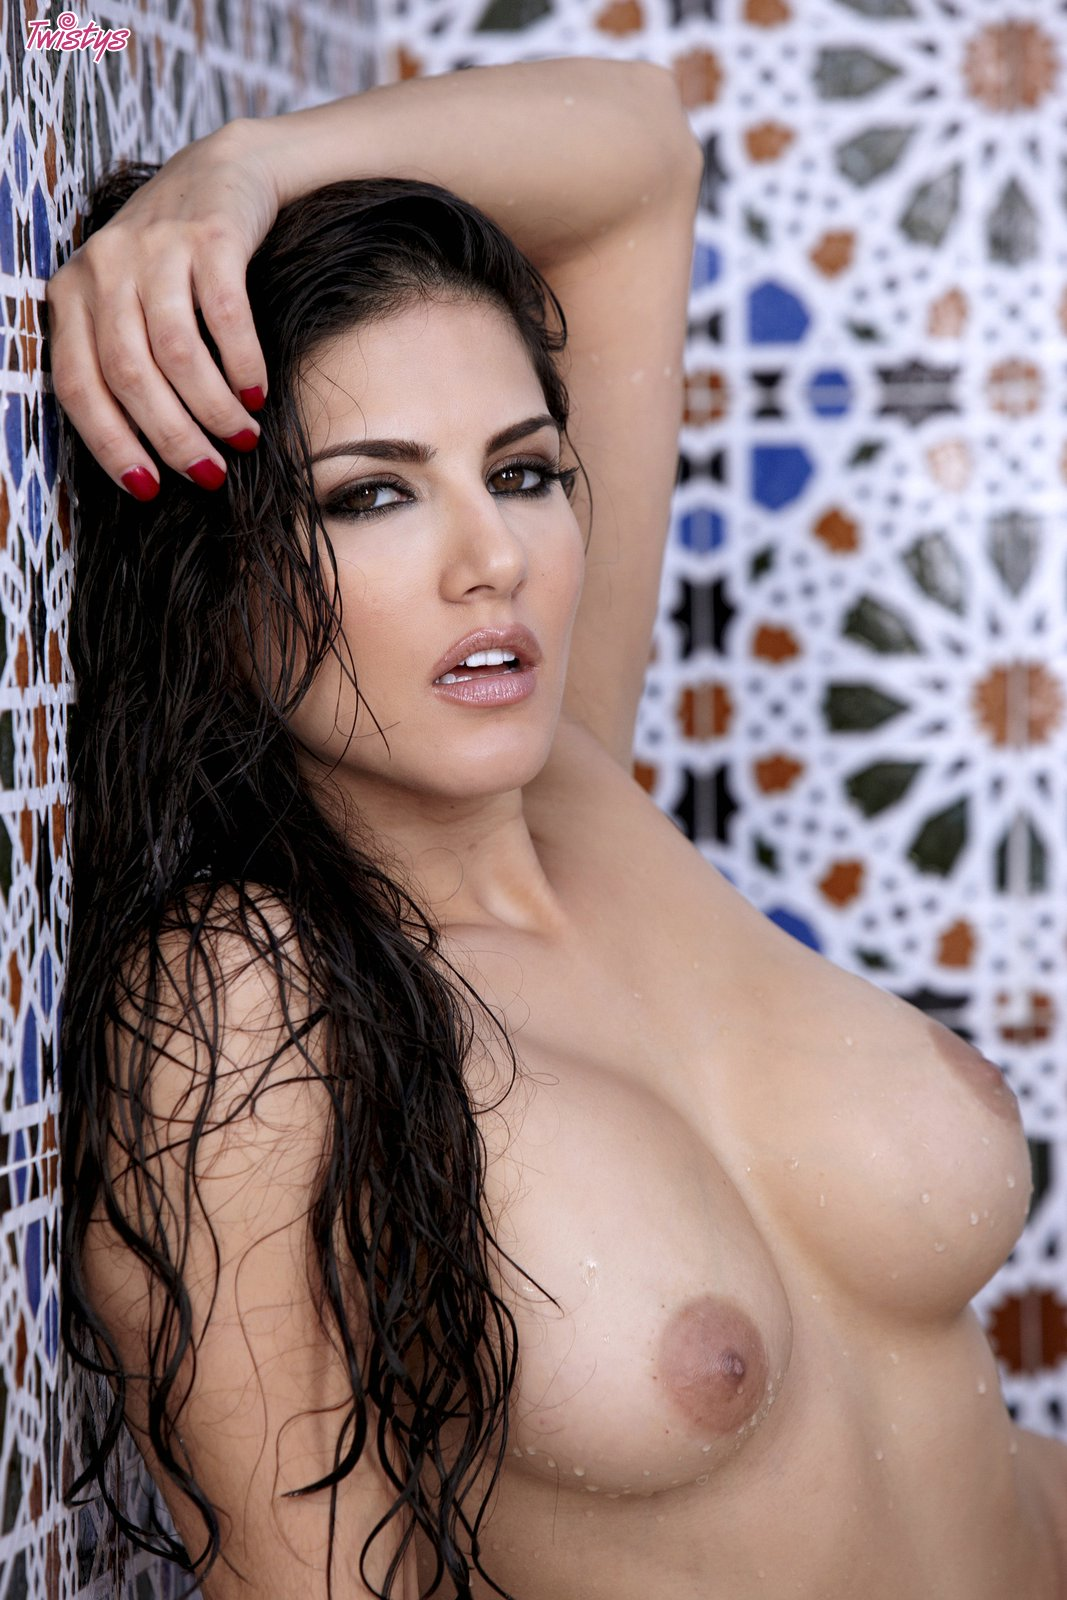 Hot Beauty Sunny Leone Posing In The Bathroom - My -8587